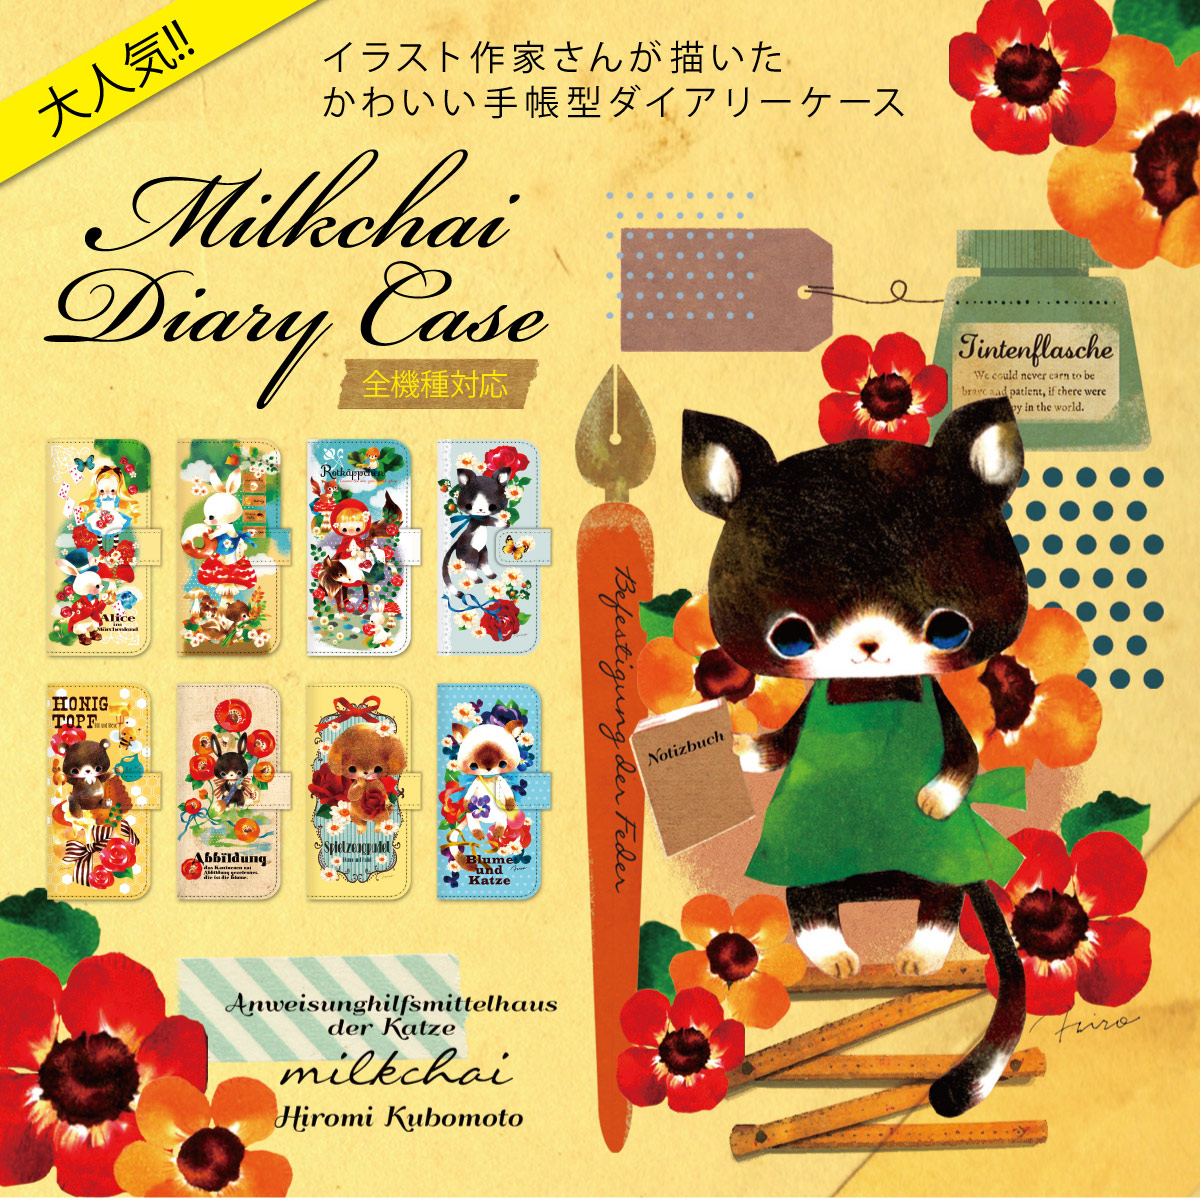 jiang diary case notebook type iPhone6 Plus iPhone5S iPhone5c case cover cute illustrations 99-zen-051 P06Dec14